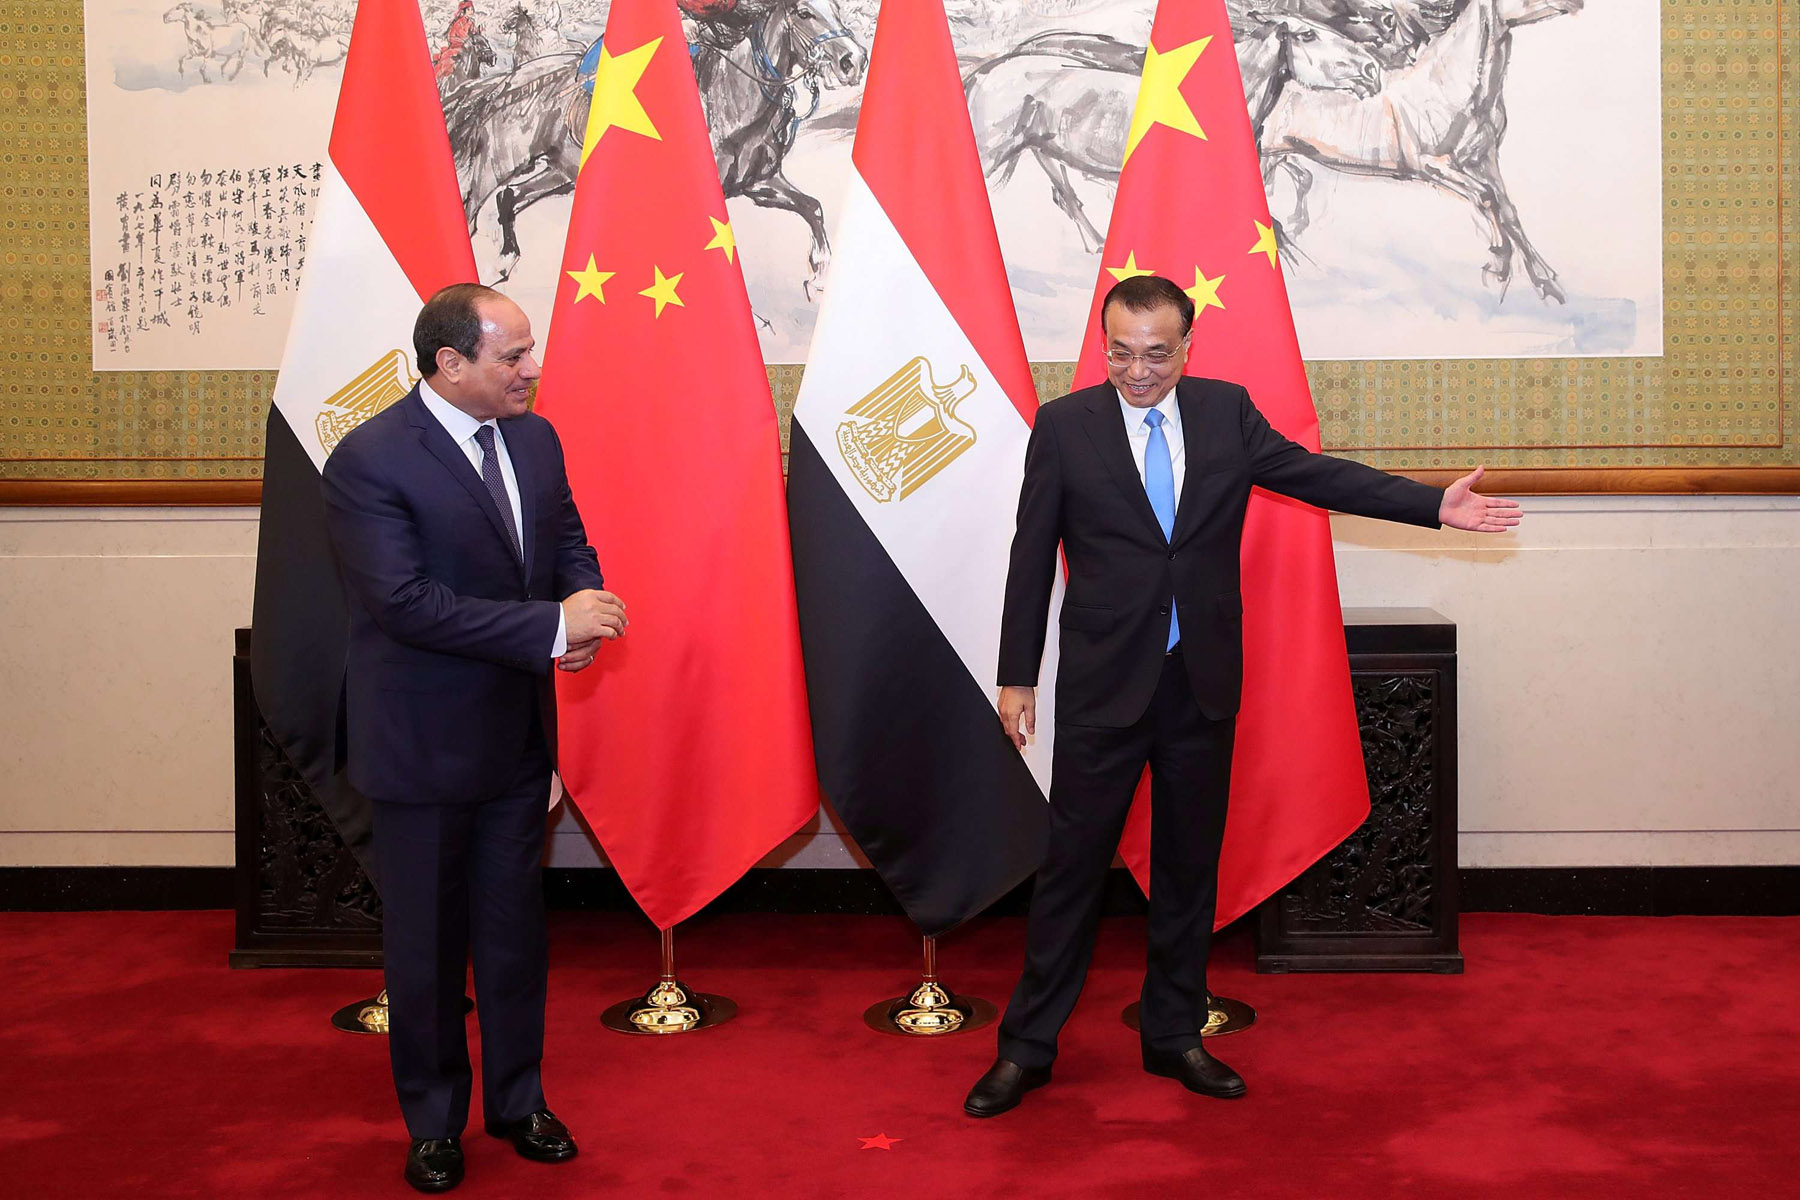 Showing the way. Egypt's President Abdel Fattah al-Sisi (L) and Chinese Premier Li Keqiang at Diaoyutai State Guesthouse in Beijing, last September. (Reuters)